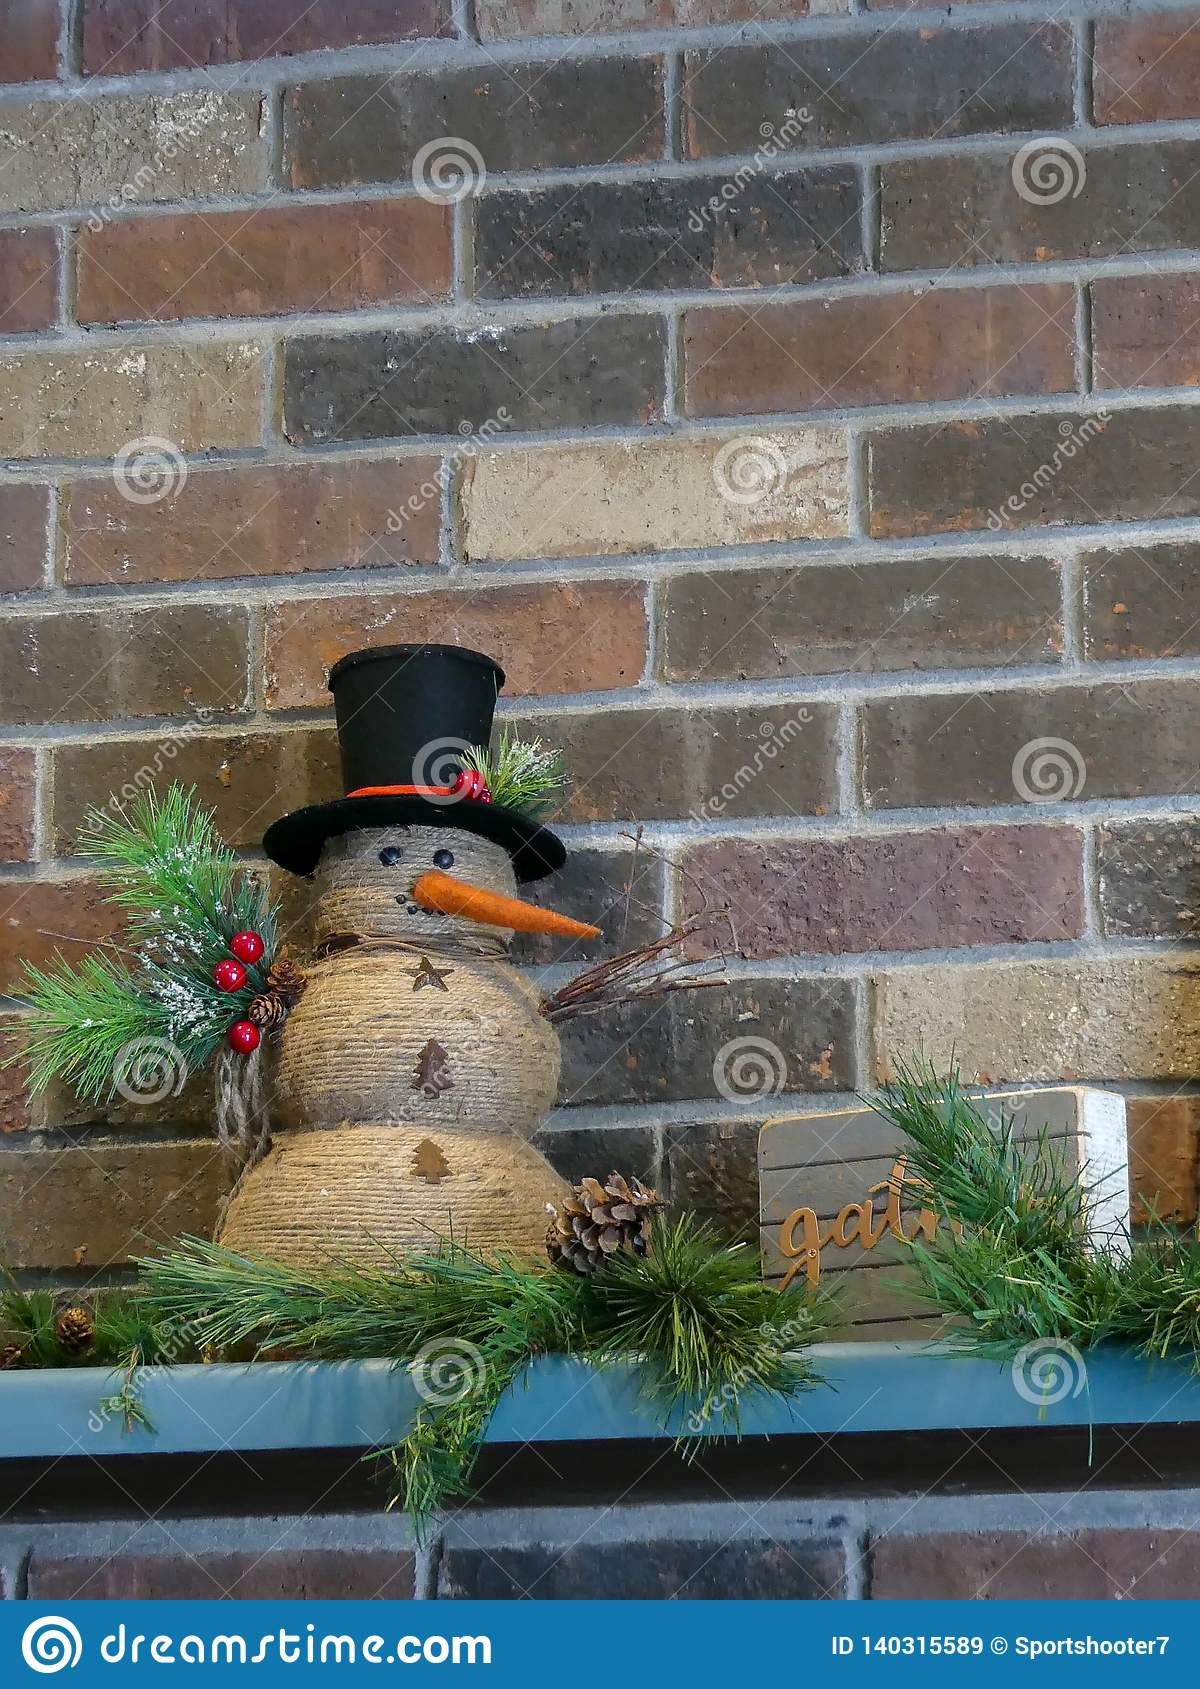 Cheerful holiday snowman decoration interior design for the holidays.